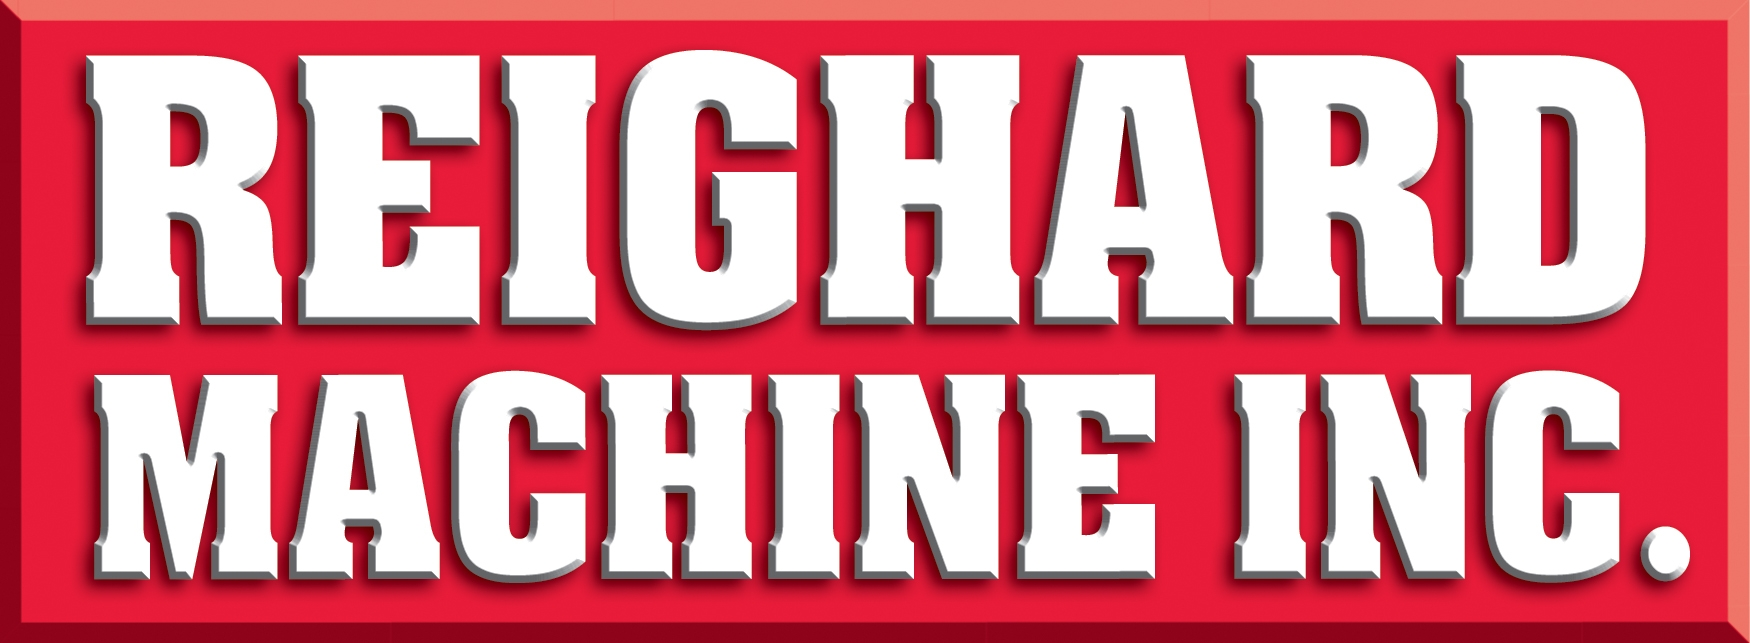 Reighard Machine Inc